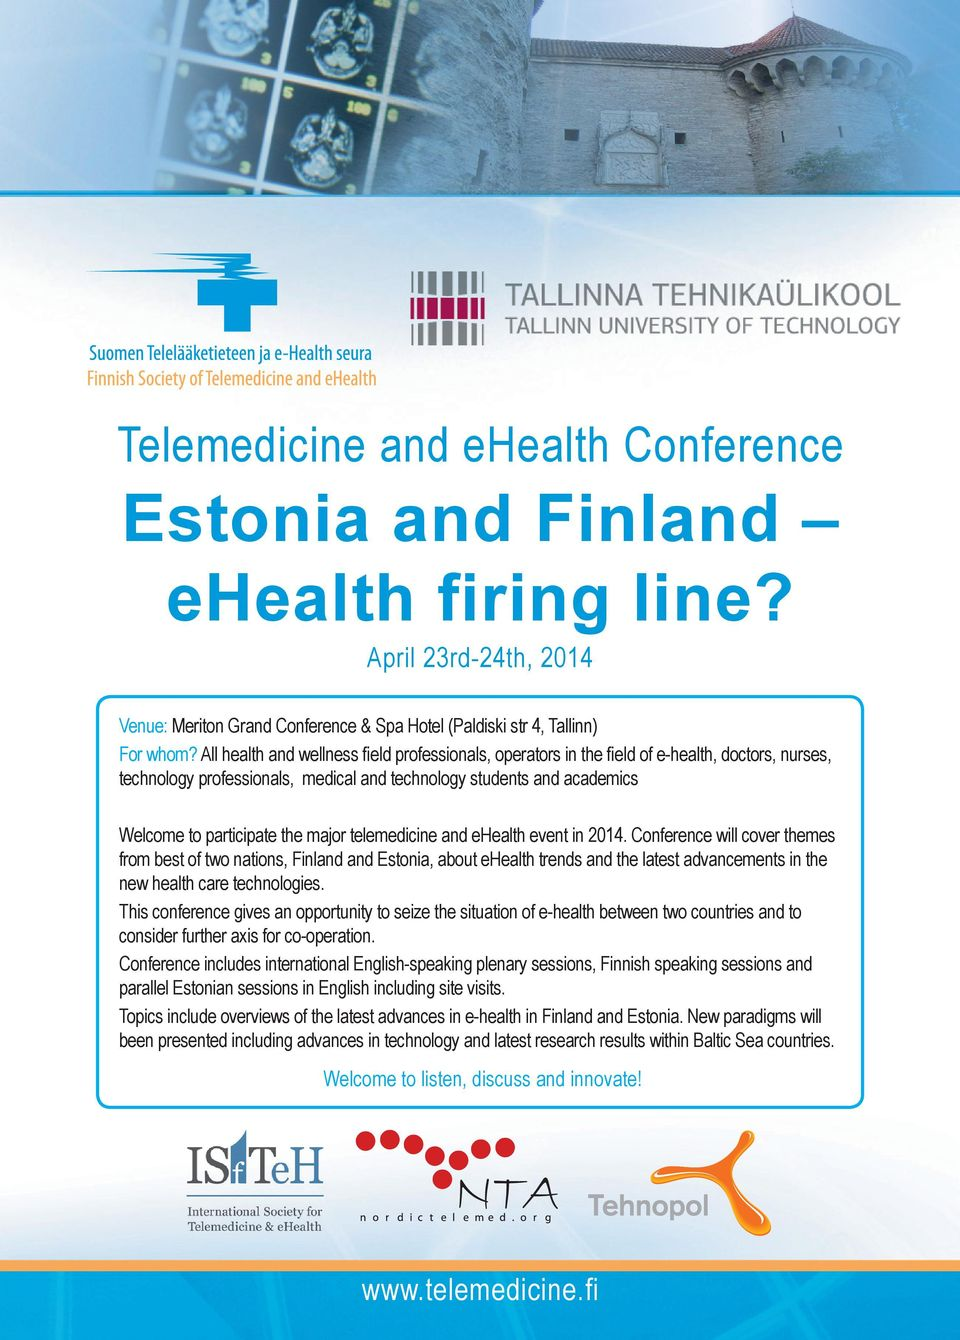 major telemedicine and ehealth event in 2014.